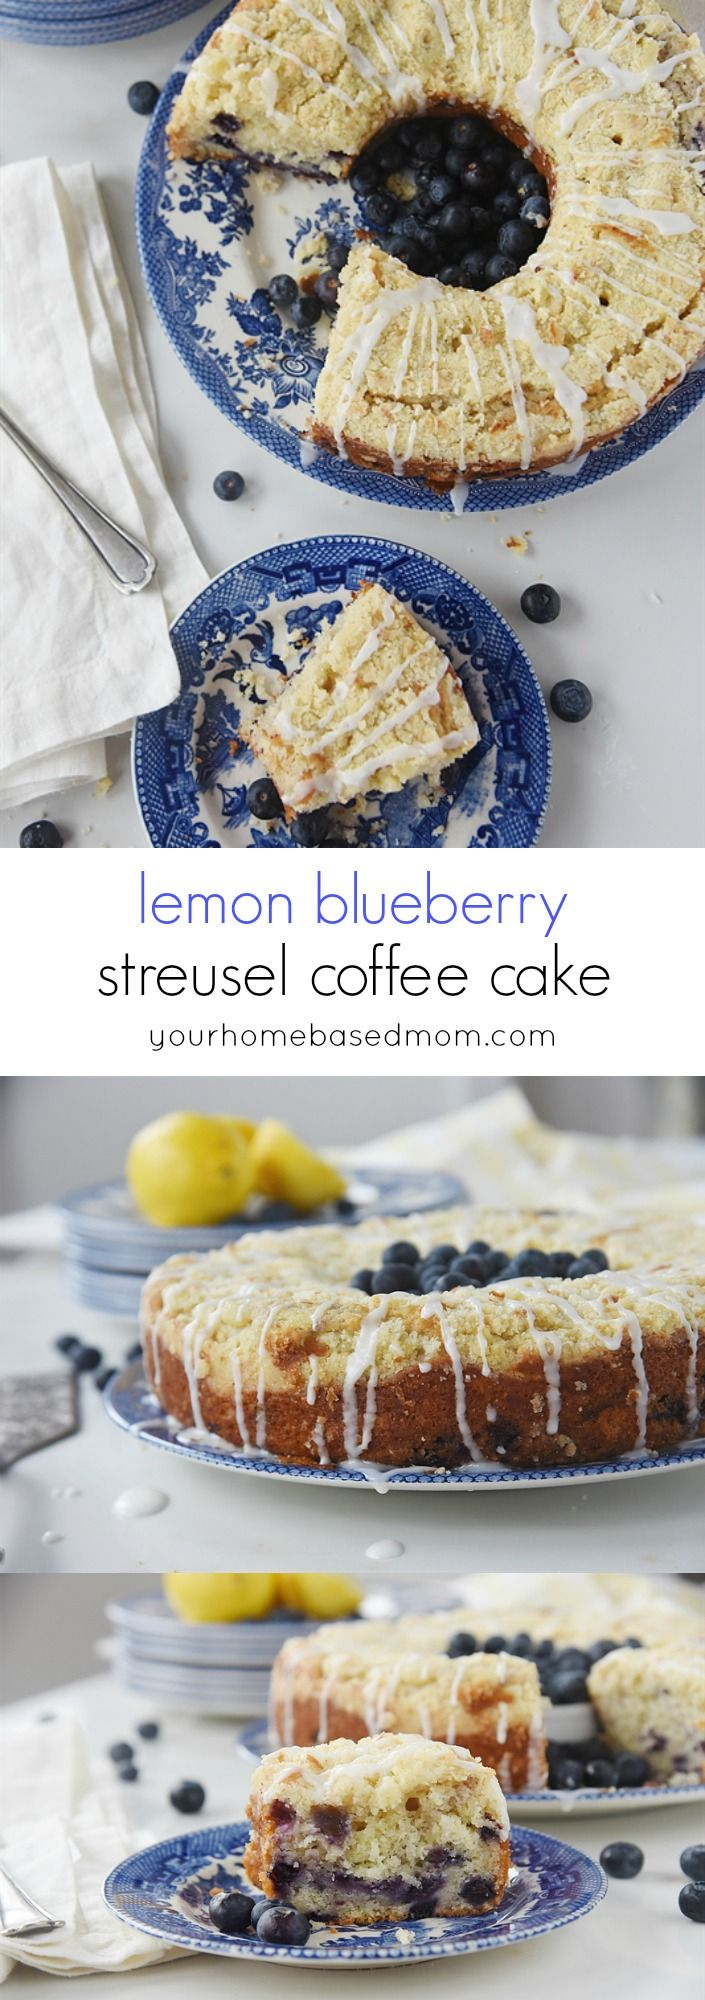 Lemon Blueberry Streusel Coffee Cake Recipe - this dessert is light, tender and delicious. Perfect for Easter and Mother's Day brunches or anytime you want something really yummy to enjoy!